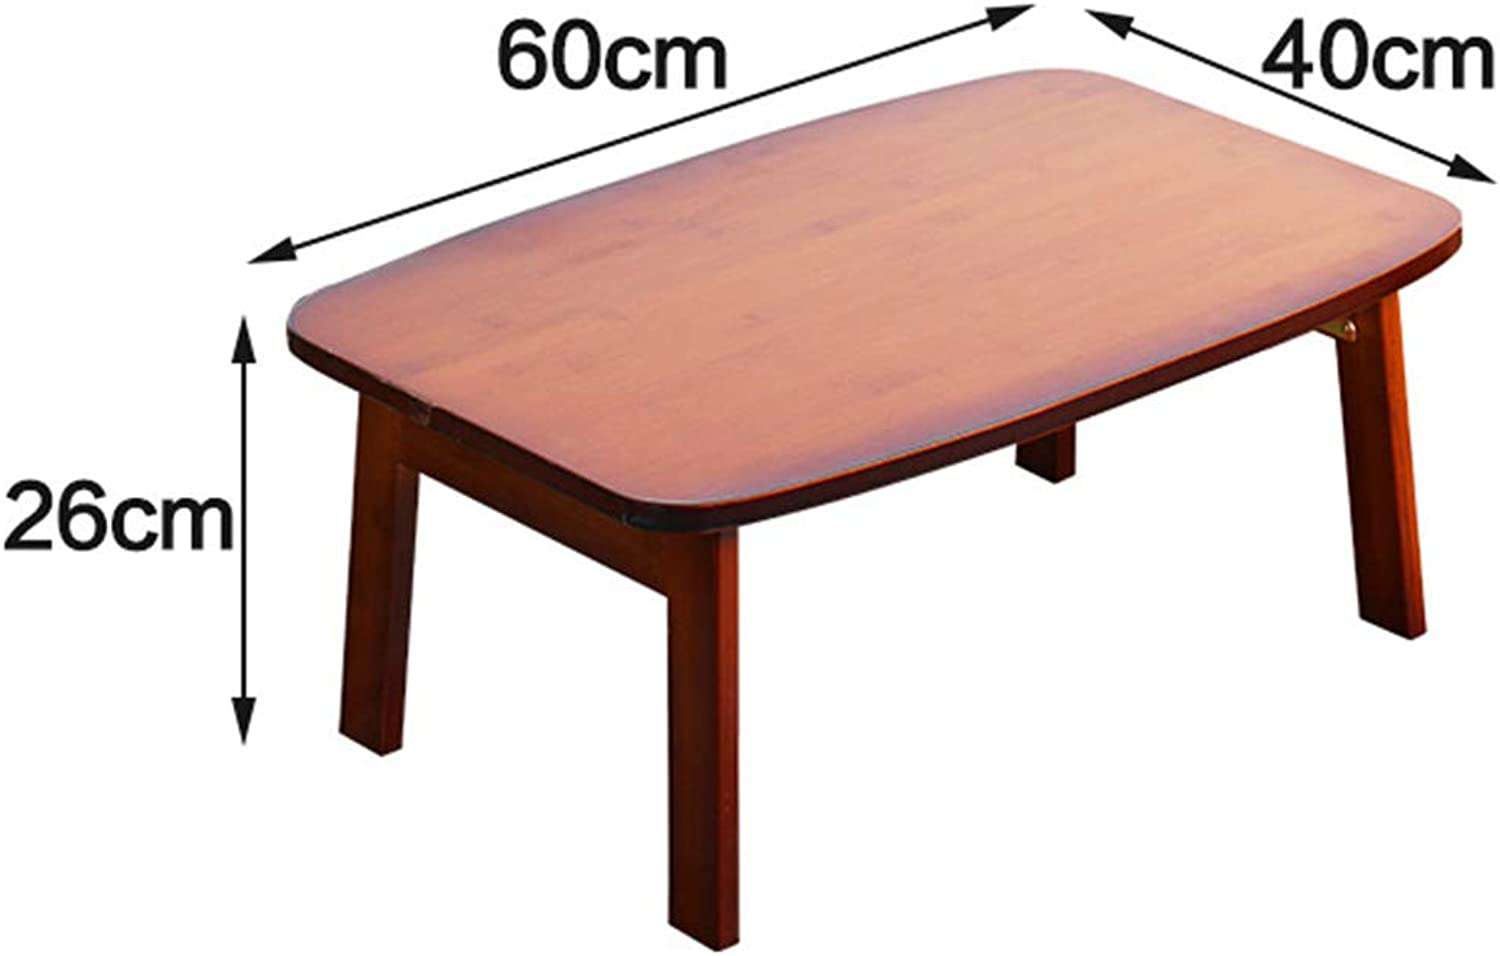 XIAOYAN End Table Bamboo Notebook Table Bed Foldable Table Bay Window Table Lazy Desk Study Table Multifunction (color   Brown (Conventional), Size   40  60  26cm)